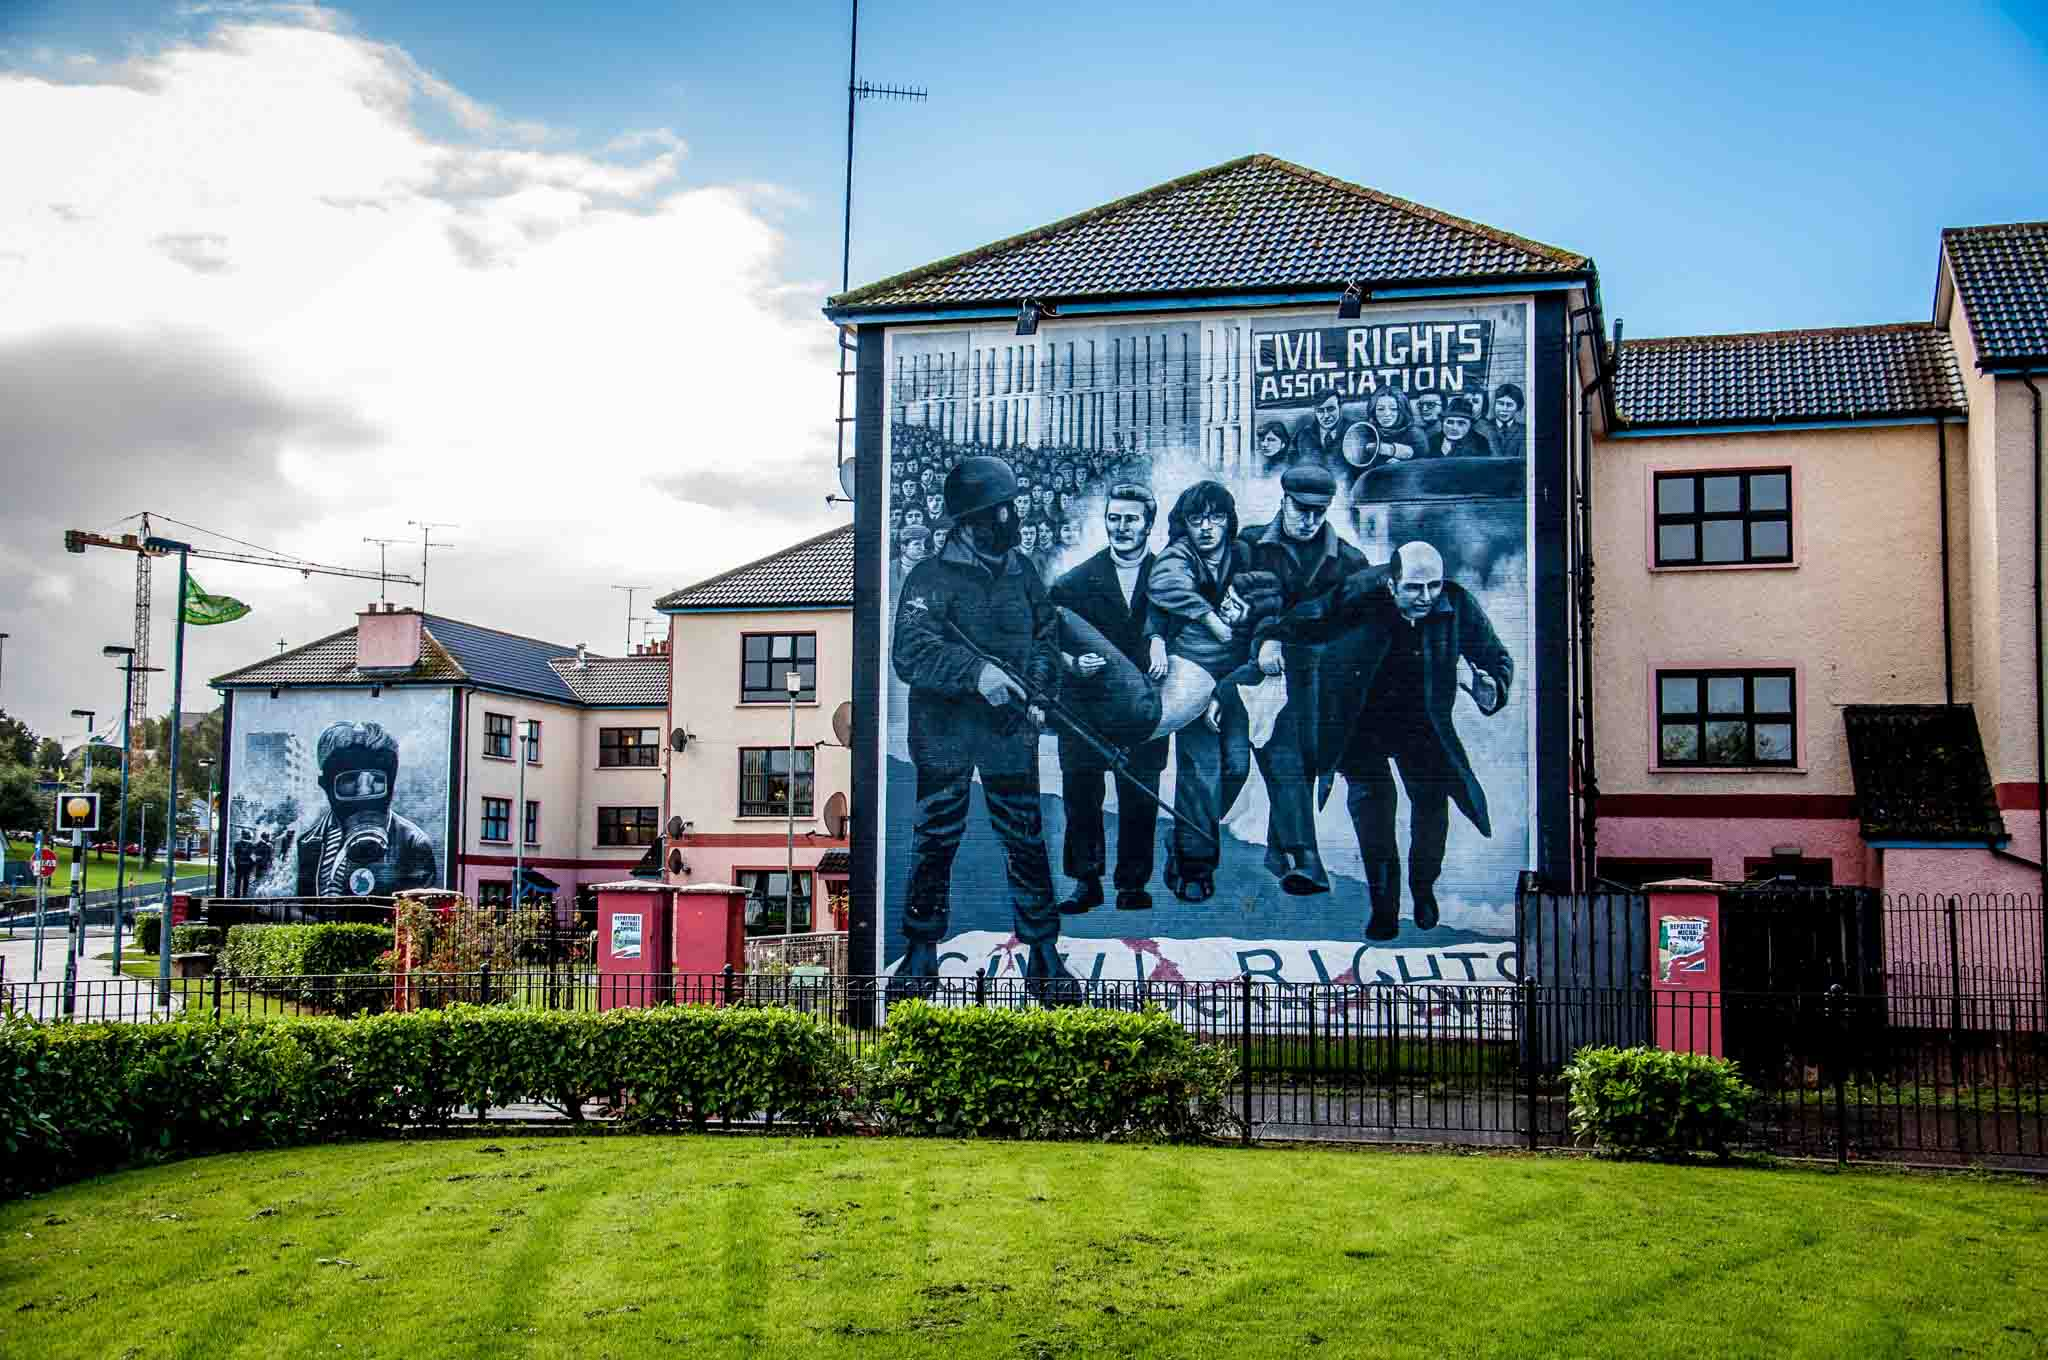 One of the Bogside Derry murals commemorating the events of Bloody Sunday